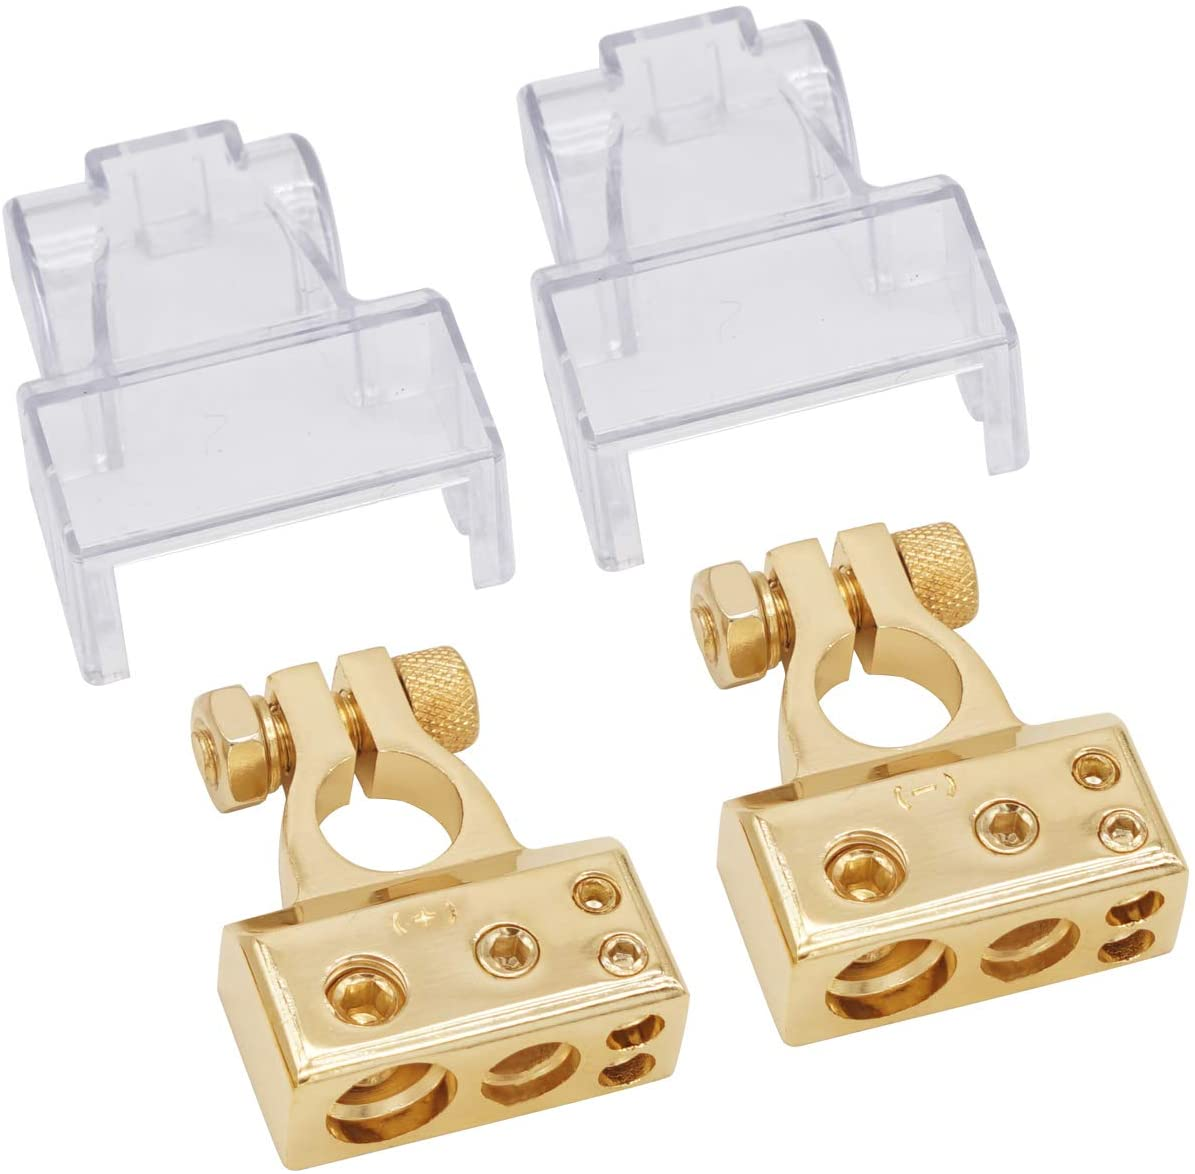 LEIGESAUDIO 0/2/4/8/10 AWG Gauge Positive & Negative Battery Terminal Clamp-Glod(Pair) (with Cover)